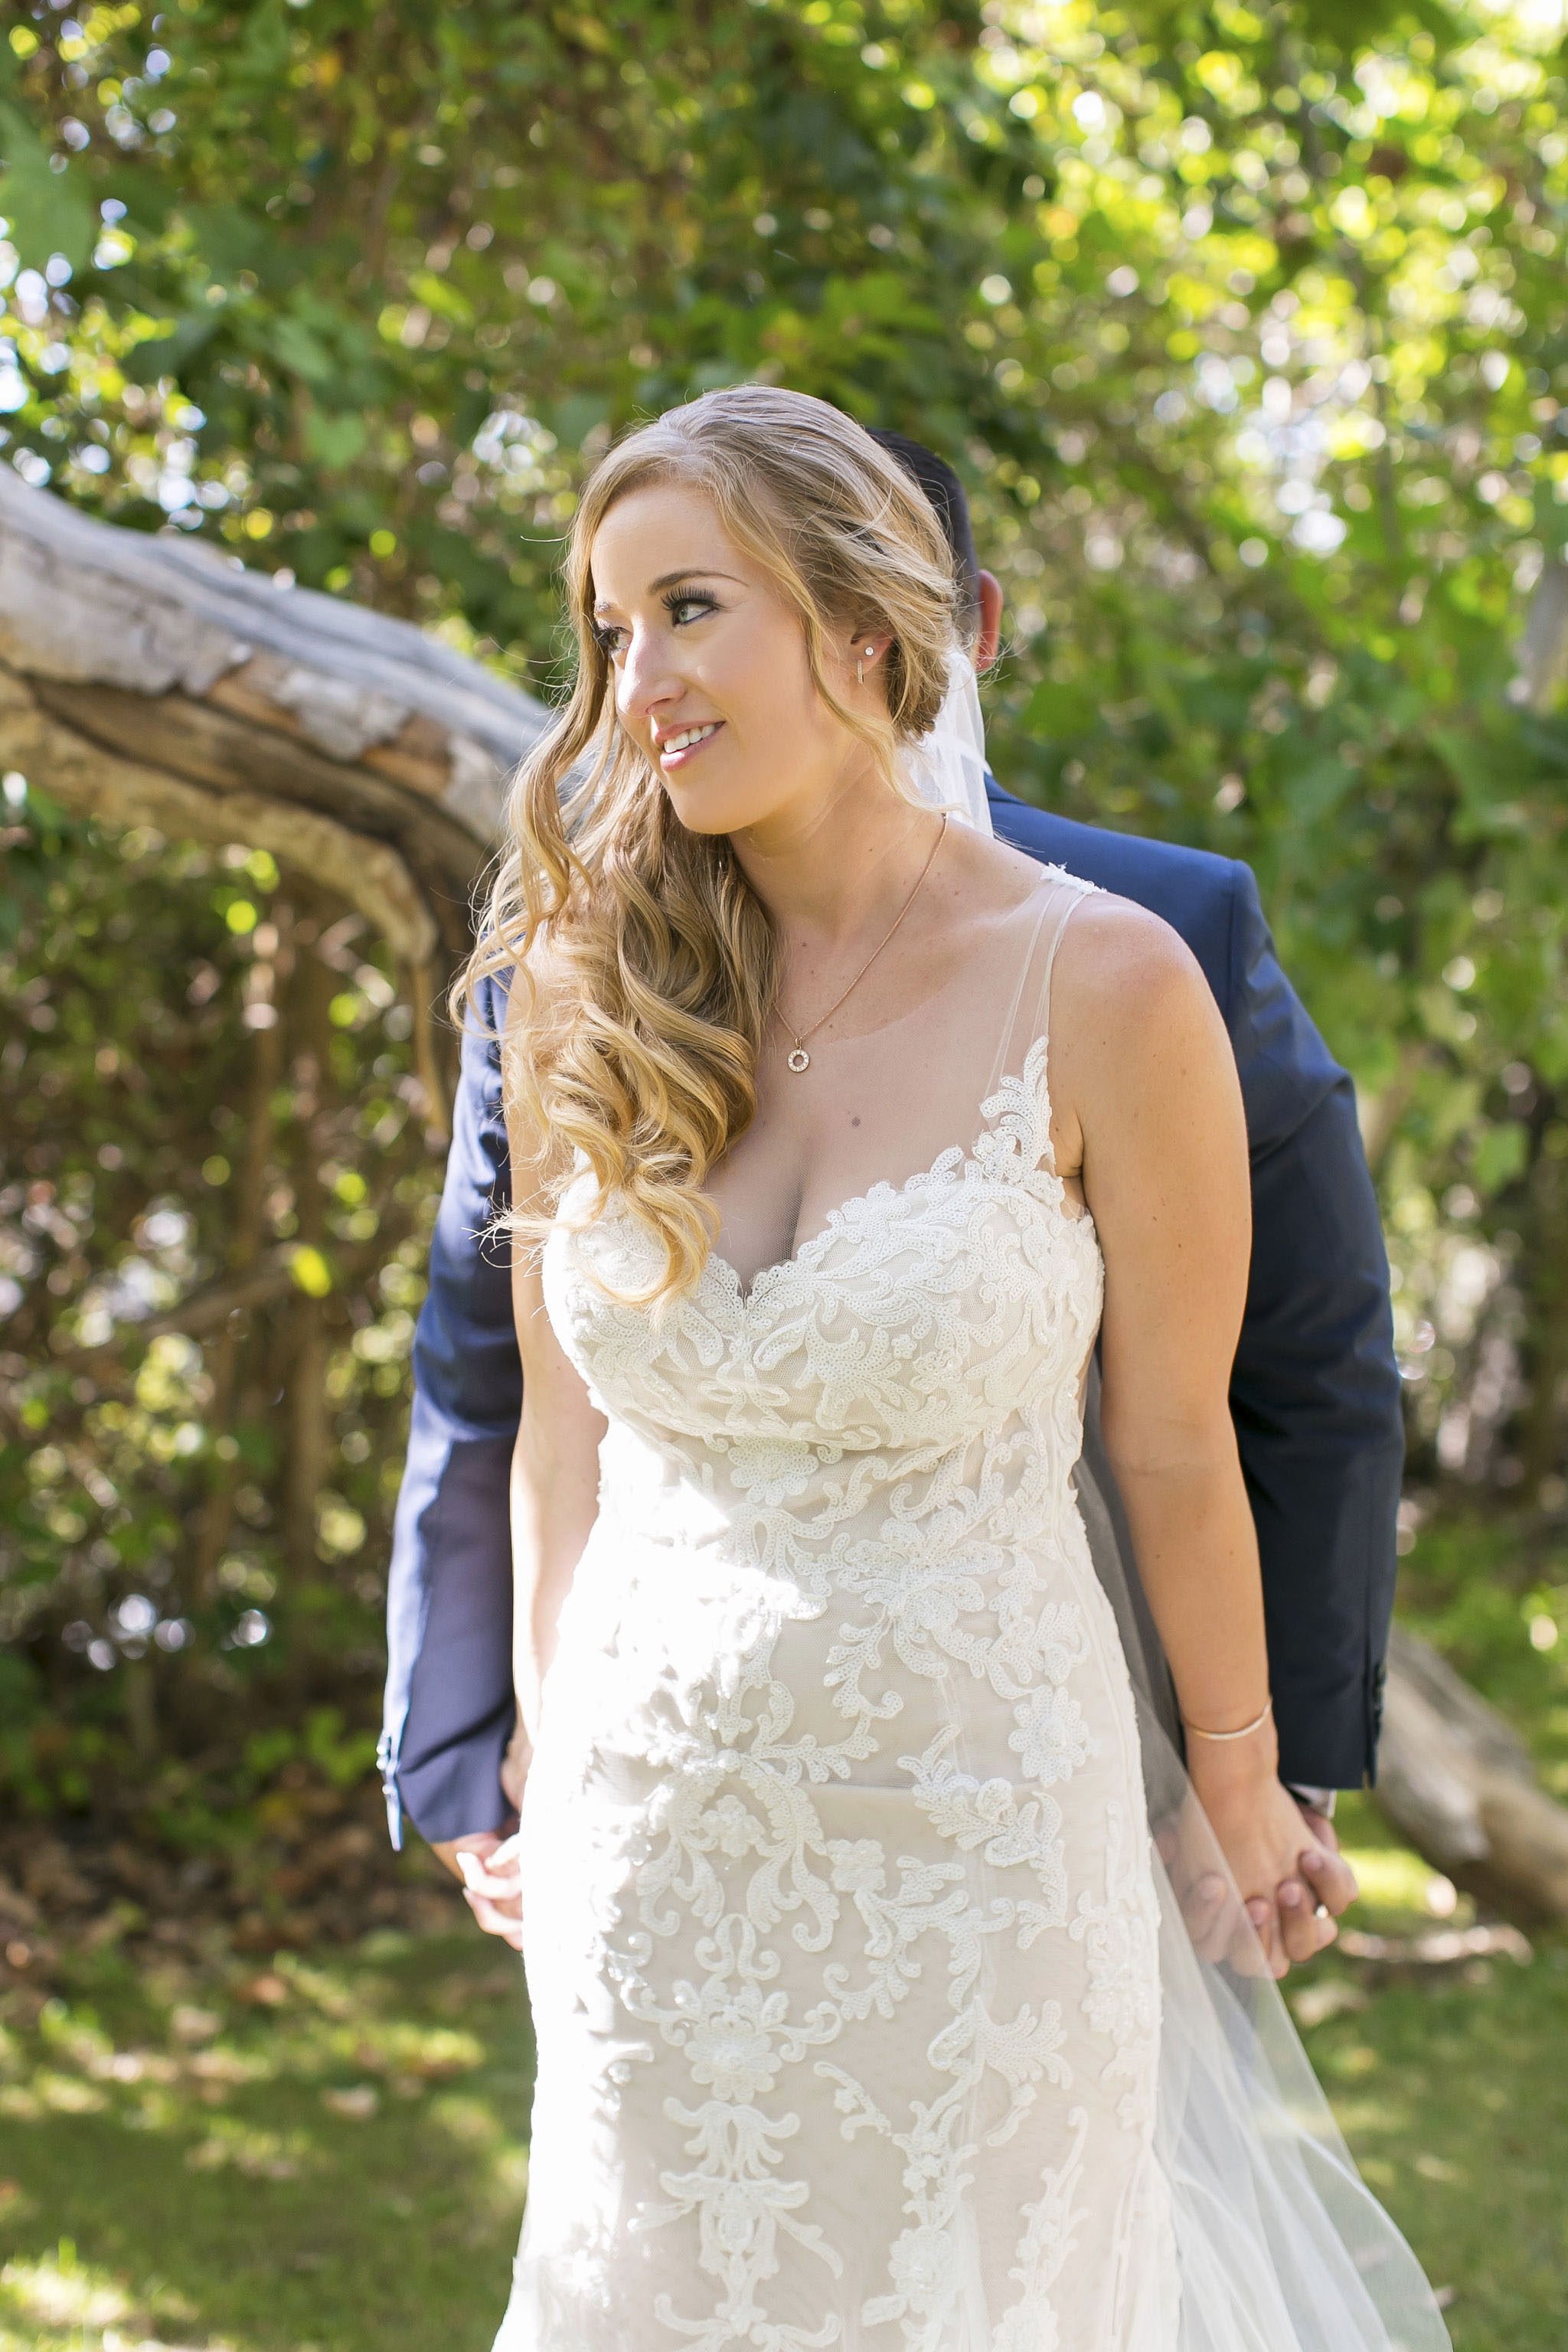 Domenica Beauty _ Hair and Makeup Artist _Wedding _ Temecula, CA _ Alexandra and Corey _ 17.JPG